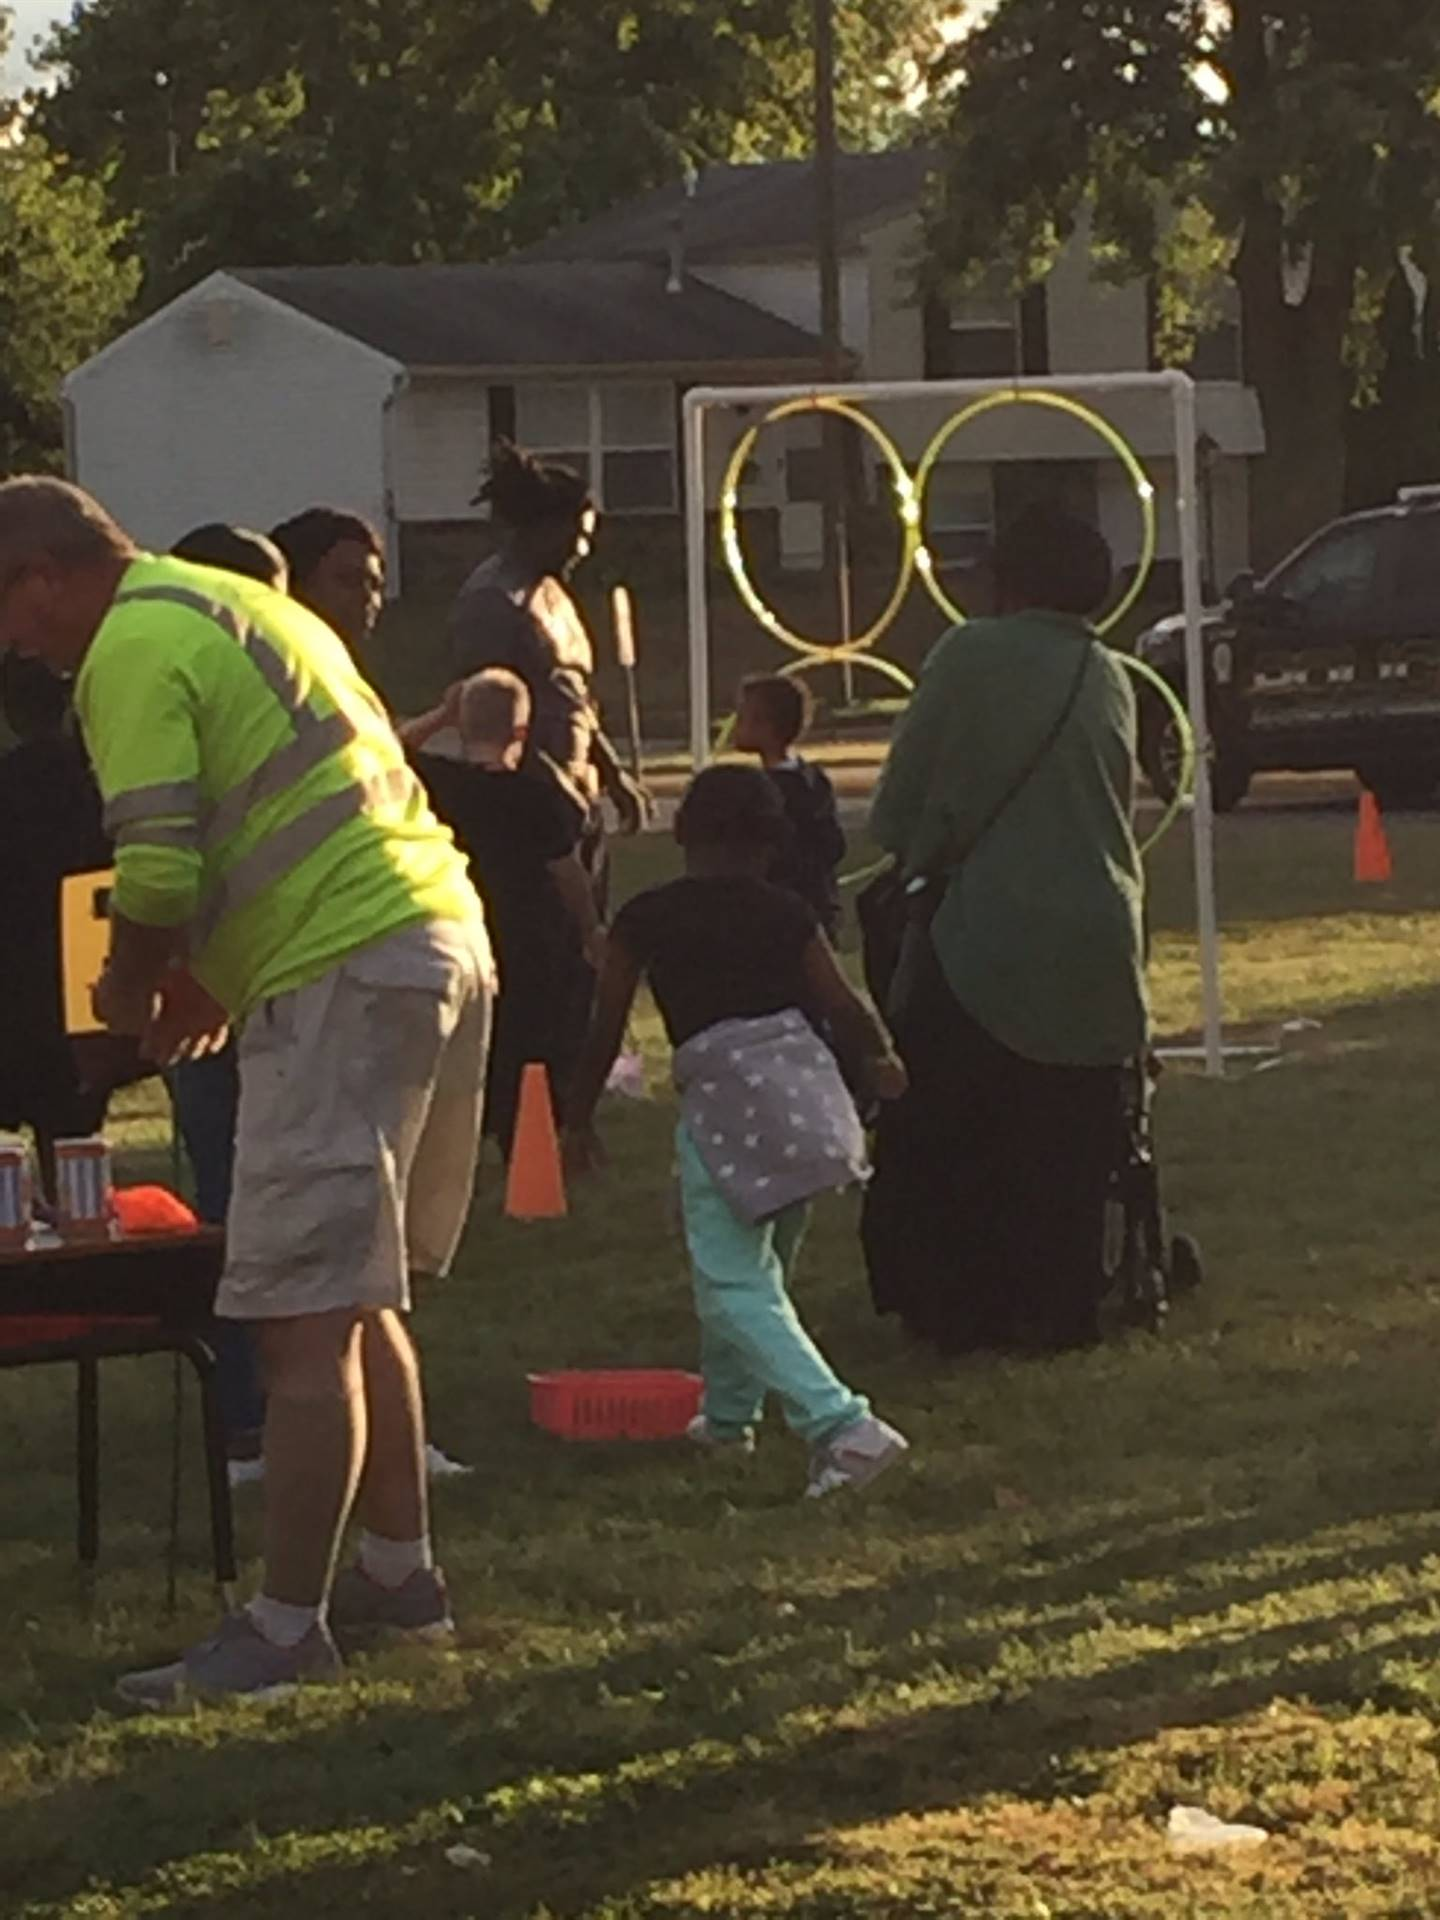 Families enjoying carnival games